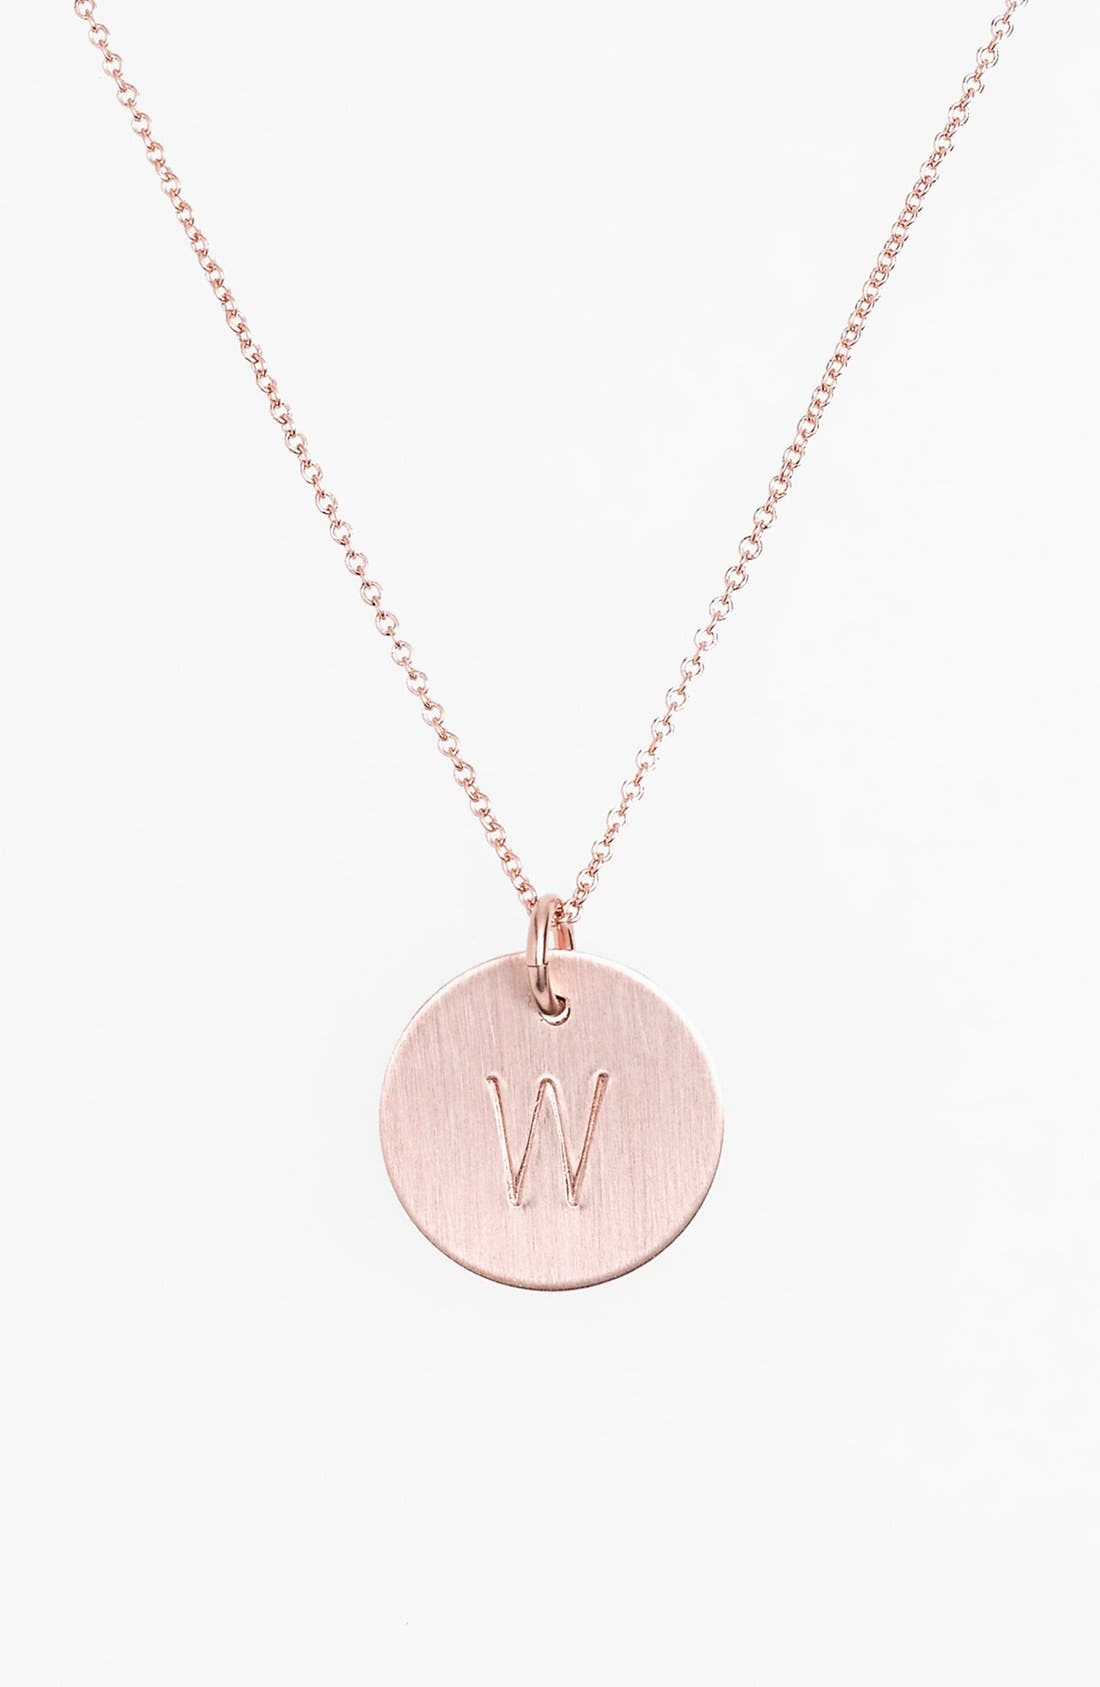 14k-Rose Gold Fill Initial Disc Necklace,                             Main thumbnail 23, color,